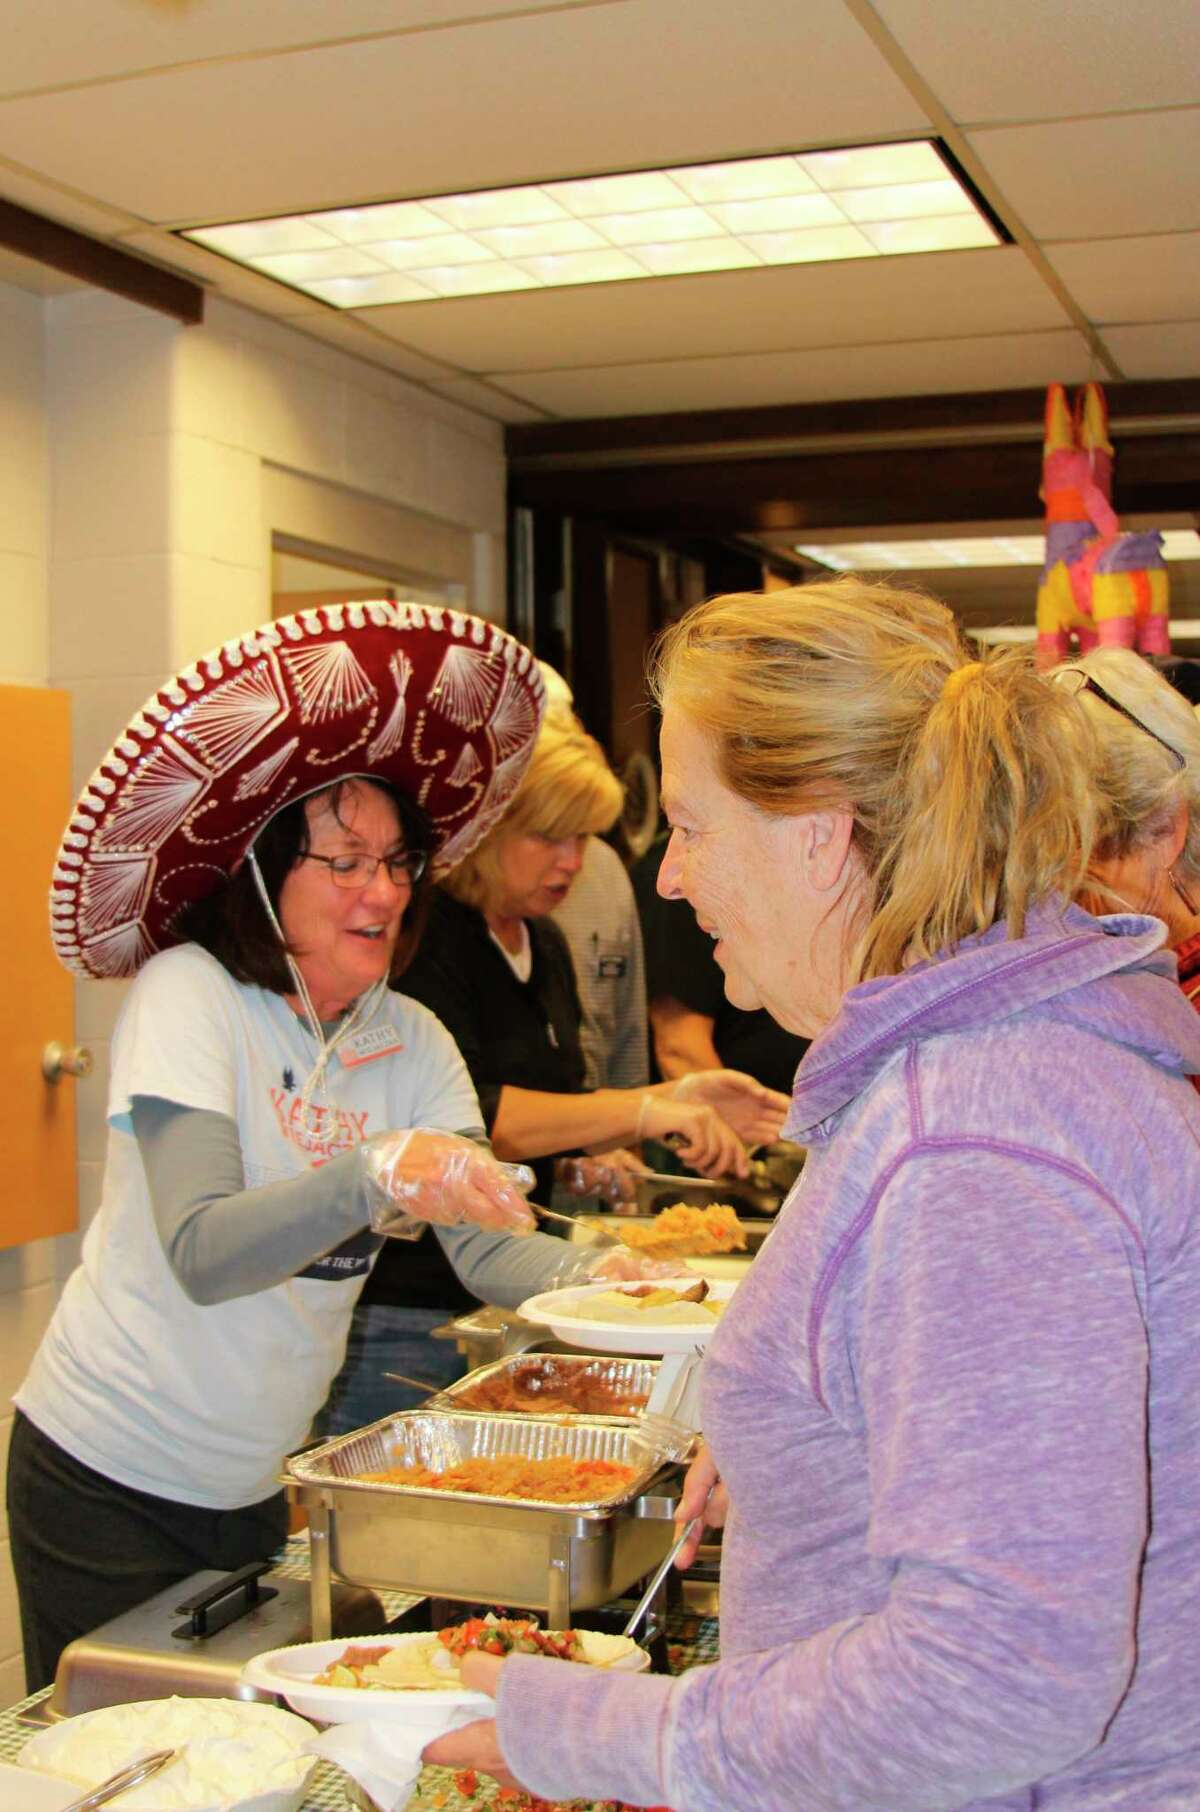 A fajita dinner to raise money for Benzie County residents with challenged abilities will be held again after being canceled in 2020, this time at a new location in Frankfort. (File Photo)